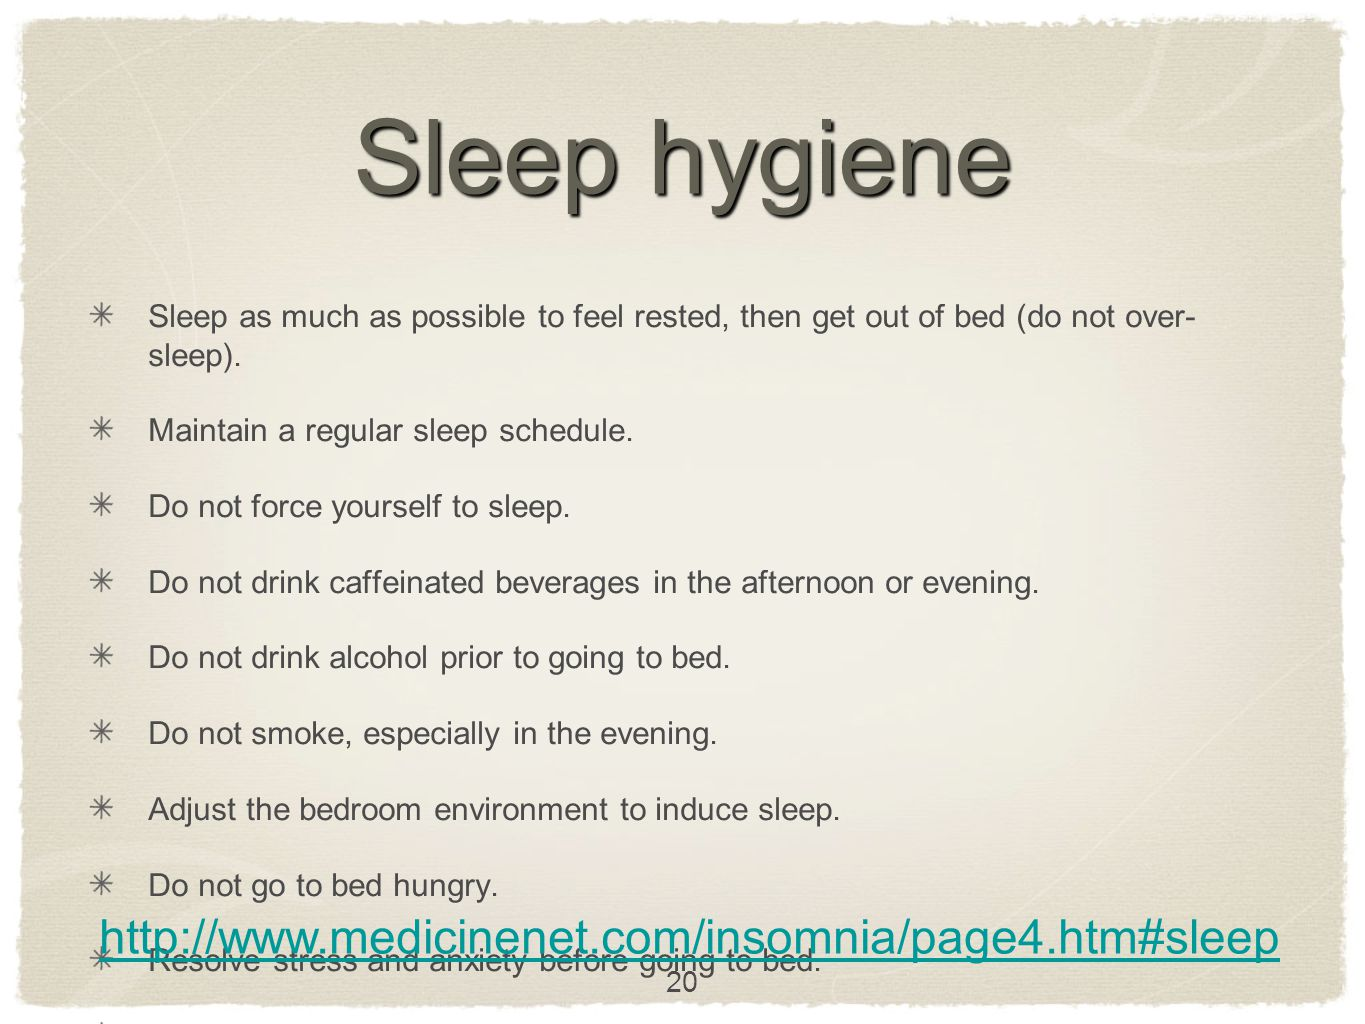 Sleep hygiene Sleep as much as possible to feel rested, then get out of bed (do not over- sleep).